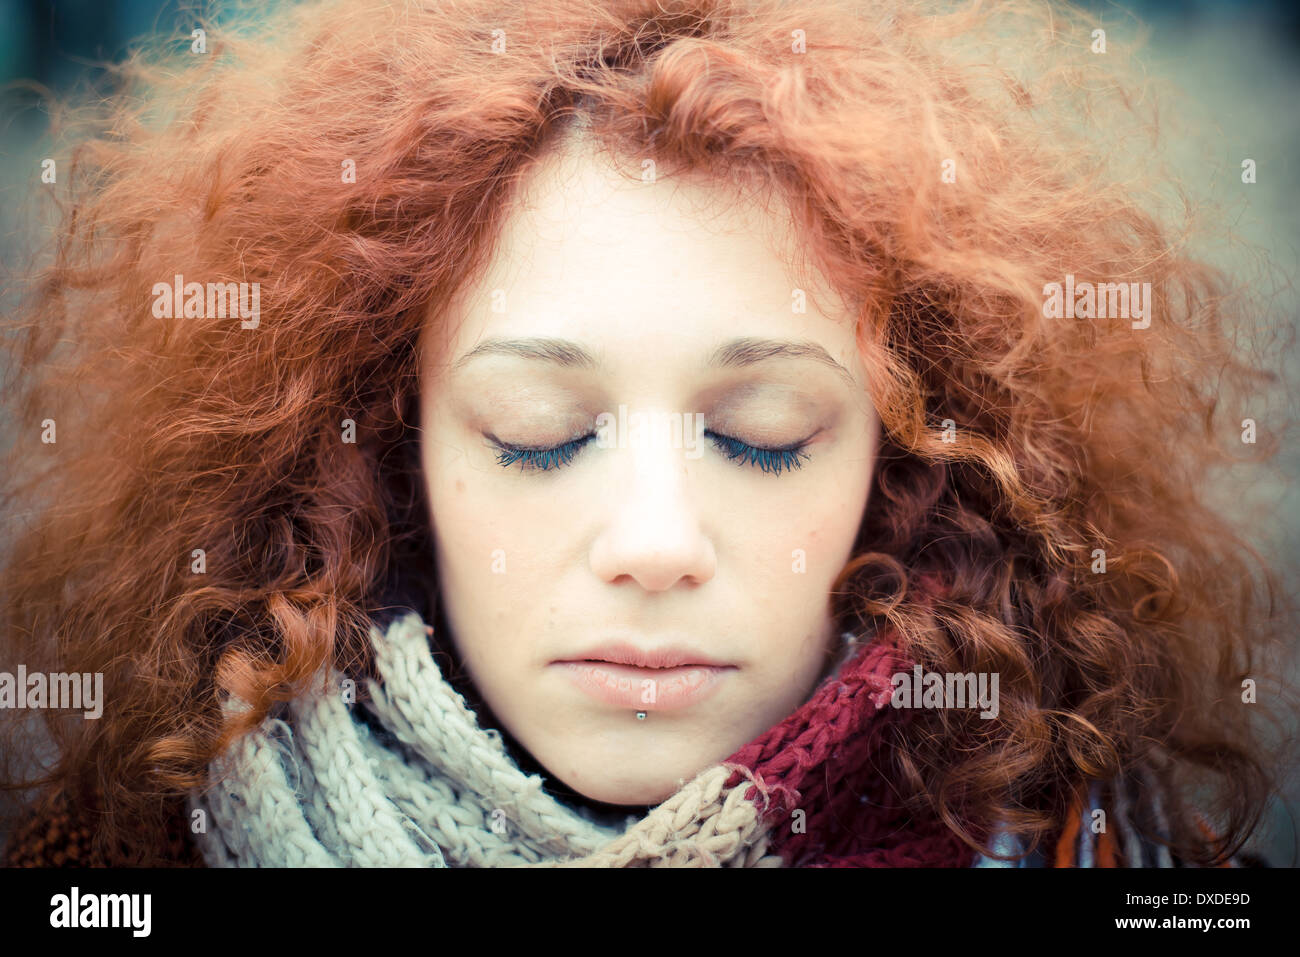 5d860f9562597 Beautiful Woman With Red Head Scarf Stock Photos & Beautiful Woman ...